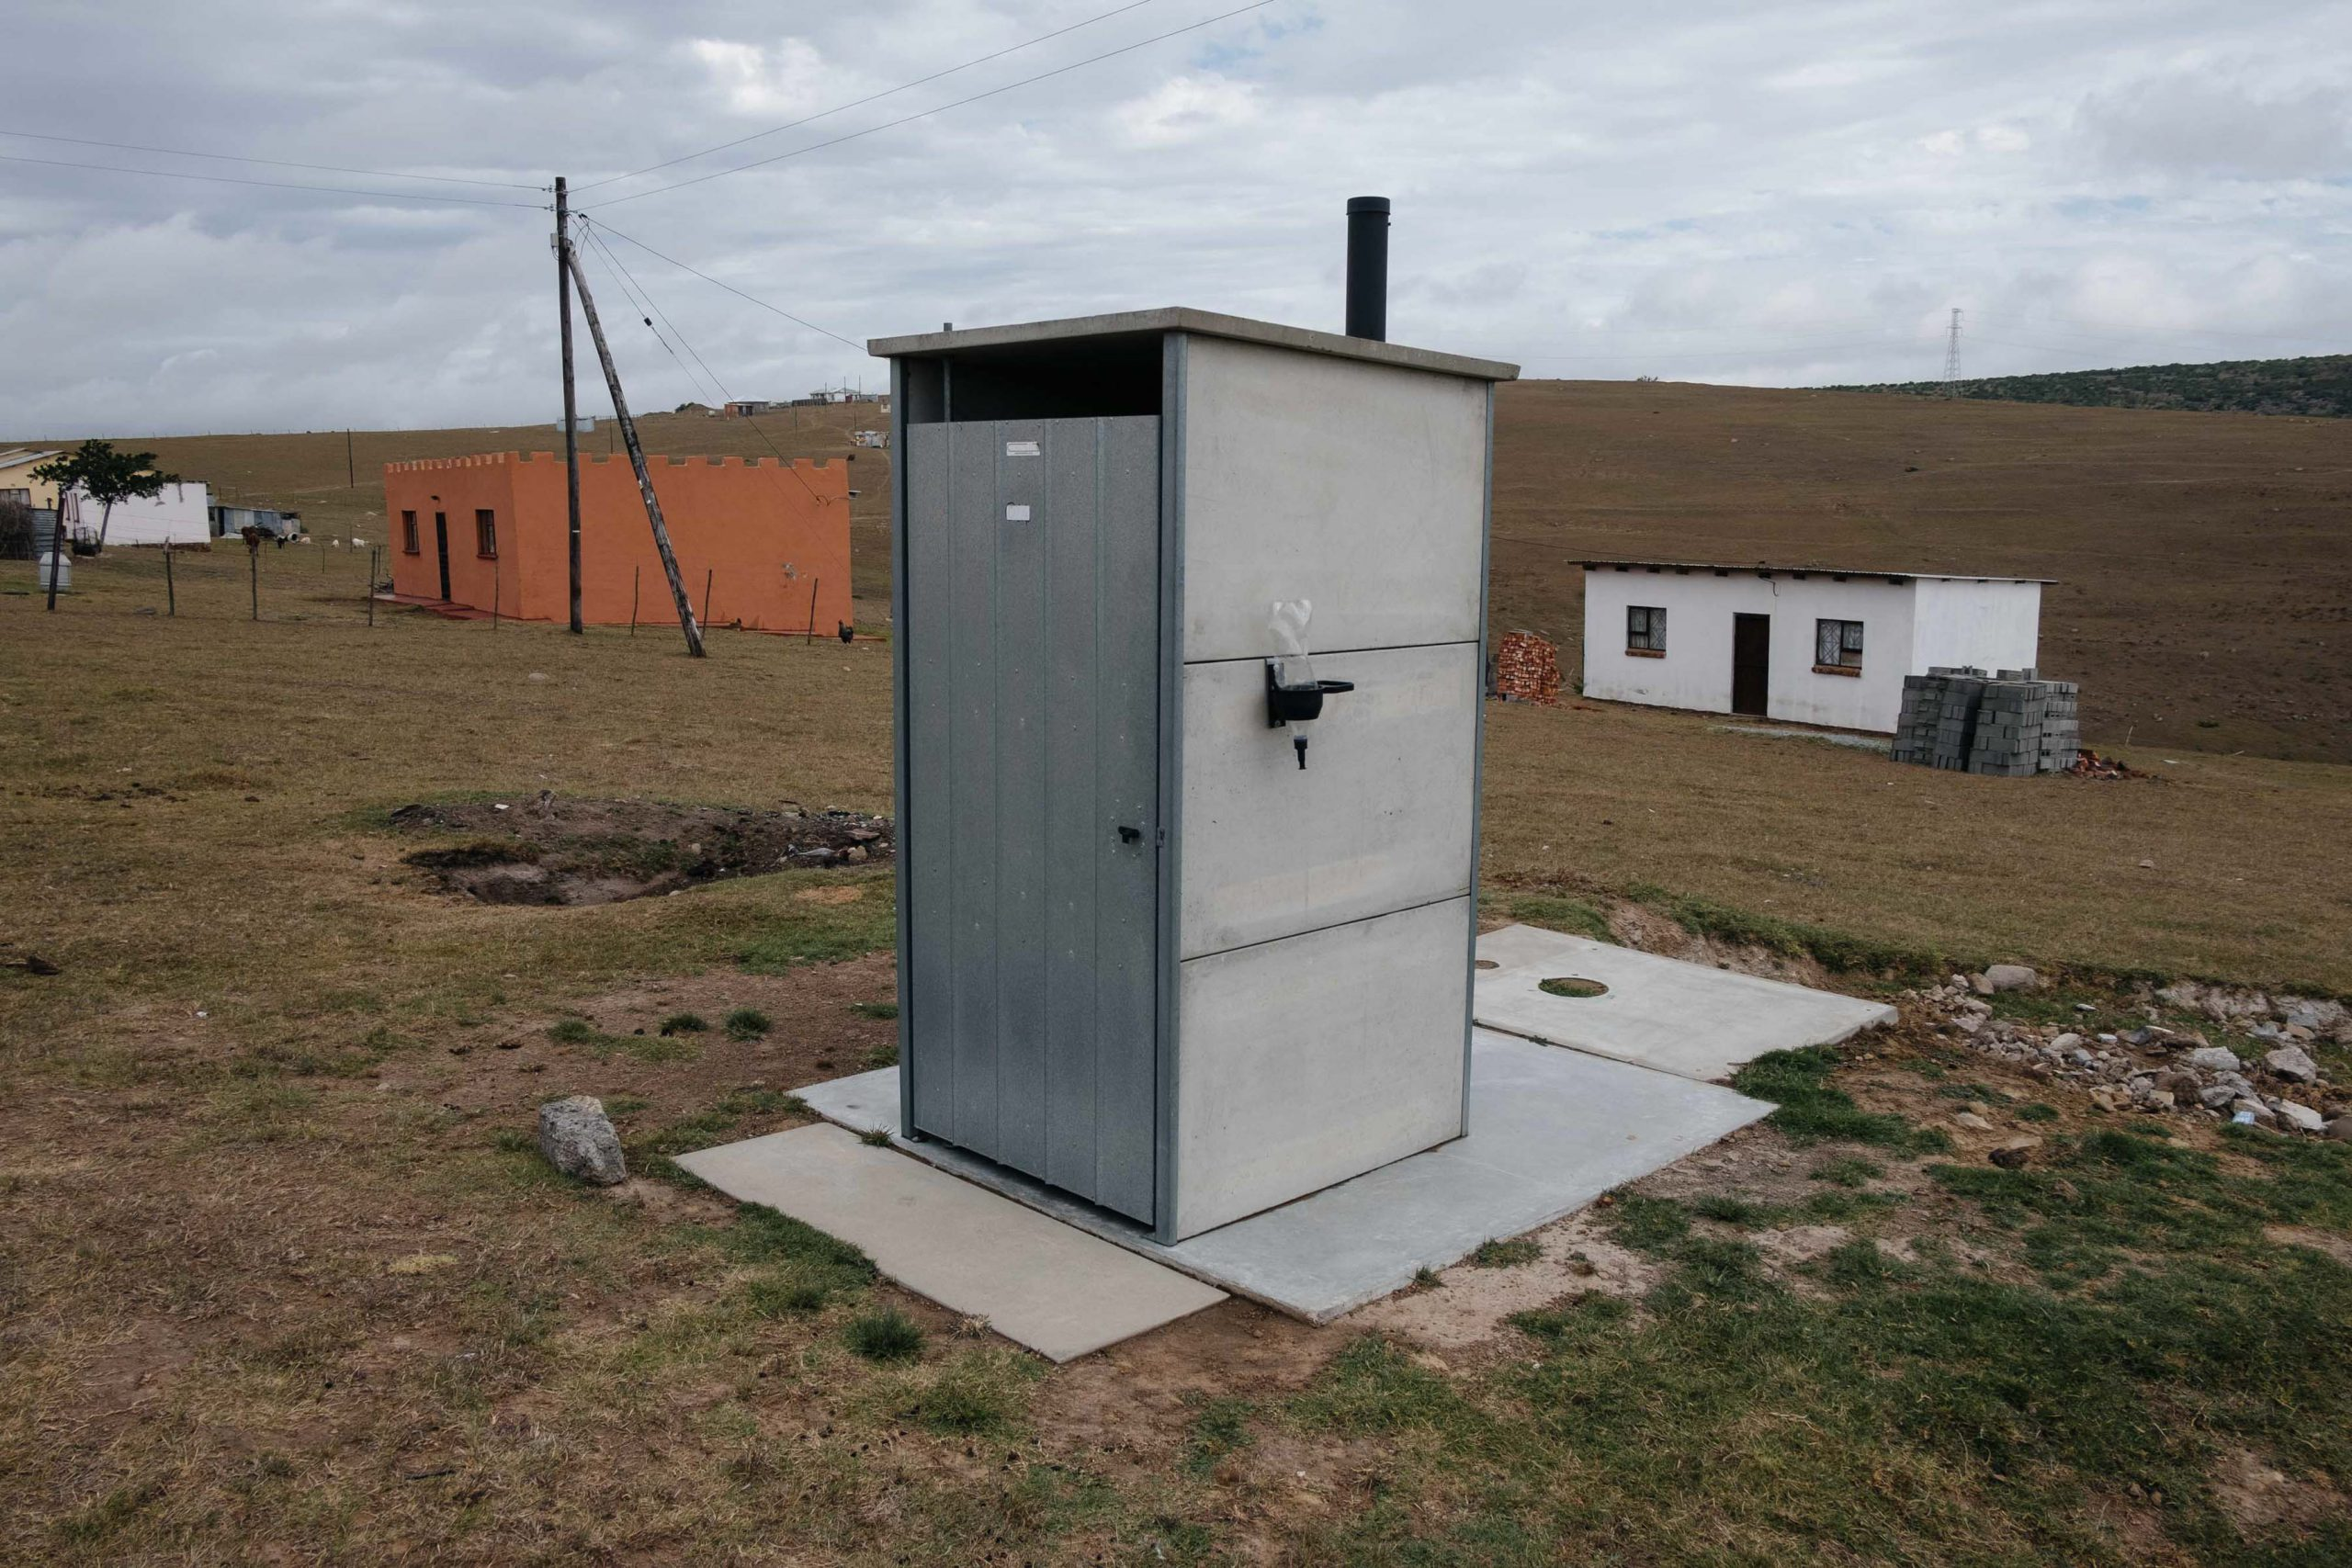 10 November 2019: A new pit latrine at Ngqwele Village in Ngqushwa Municipality, Eastern Cape. The toilets require no running water, helping to alleviate pressure on municipal water supplies.